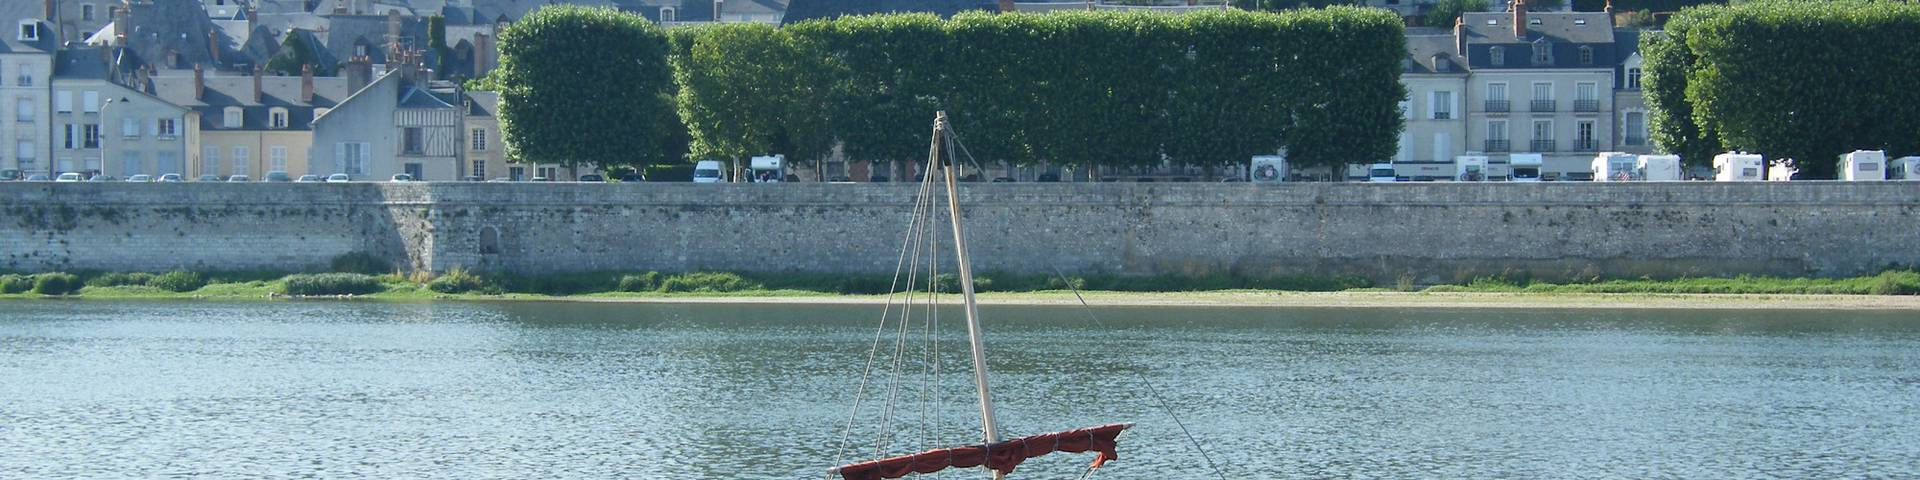 Futreau on the Loire at Blois. © OTBC